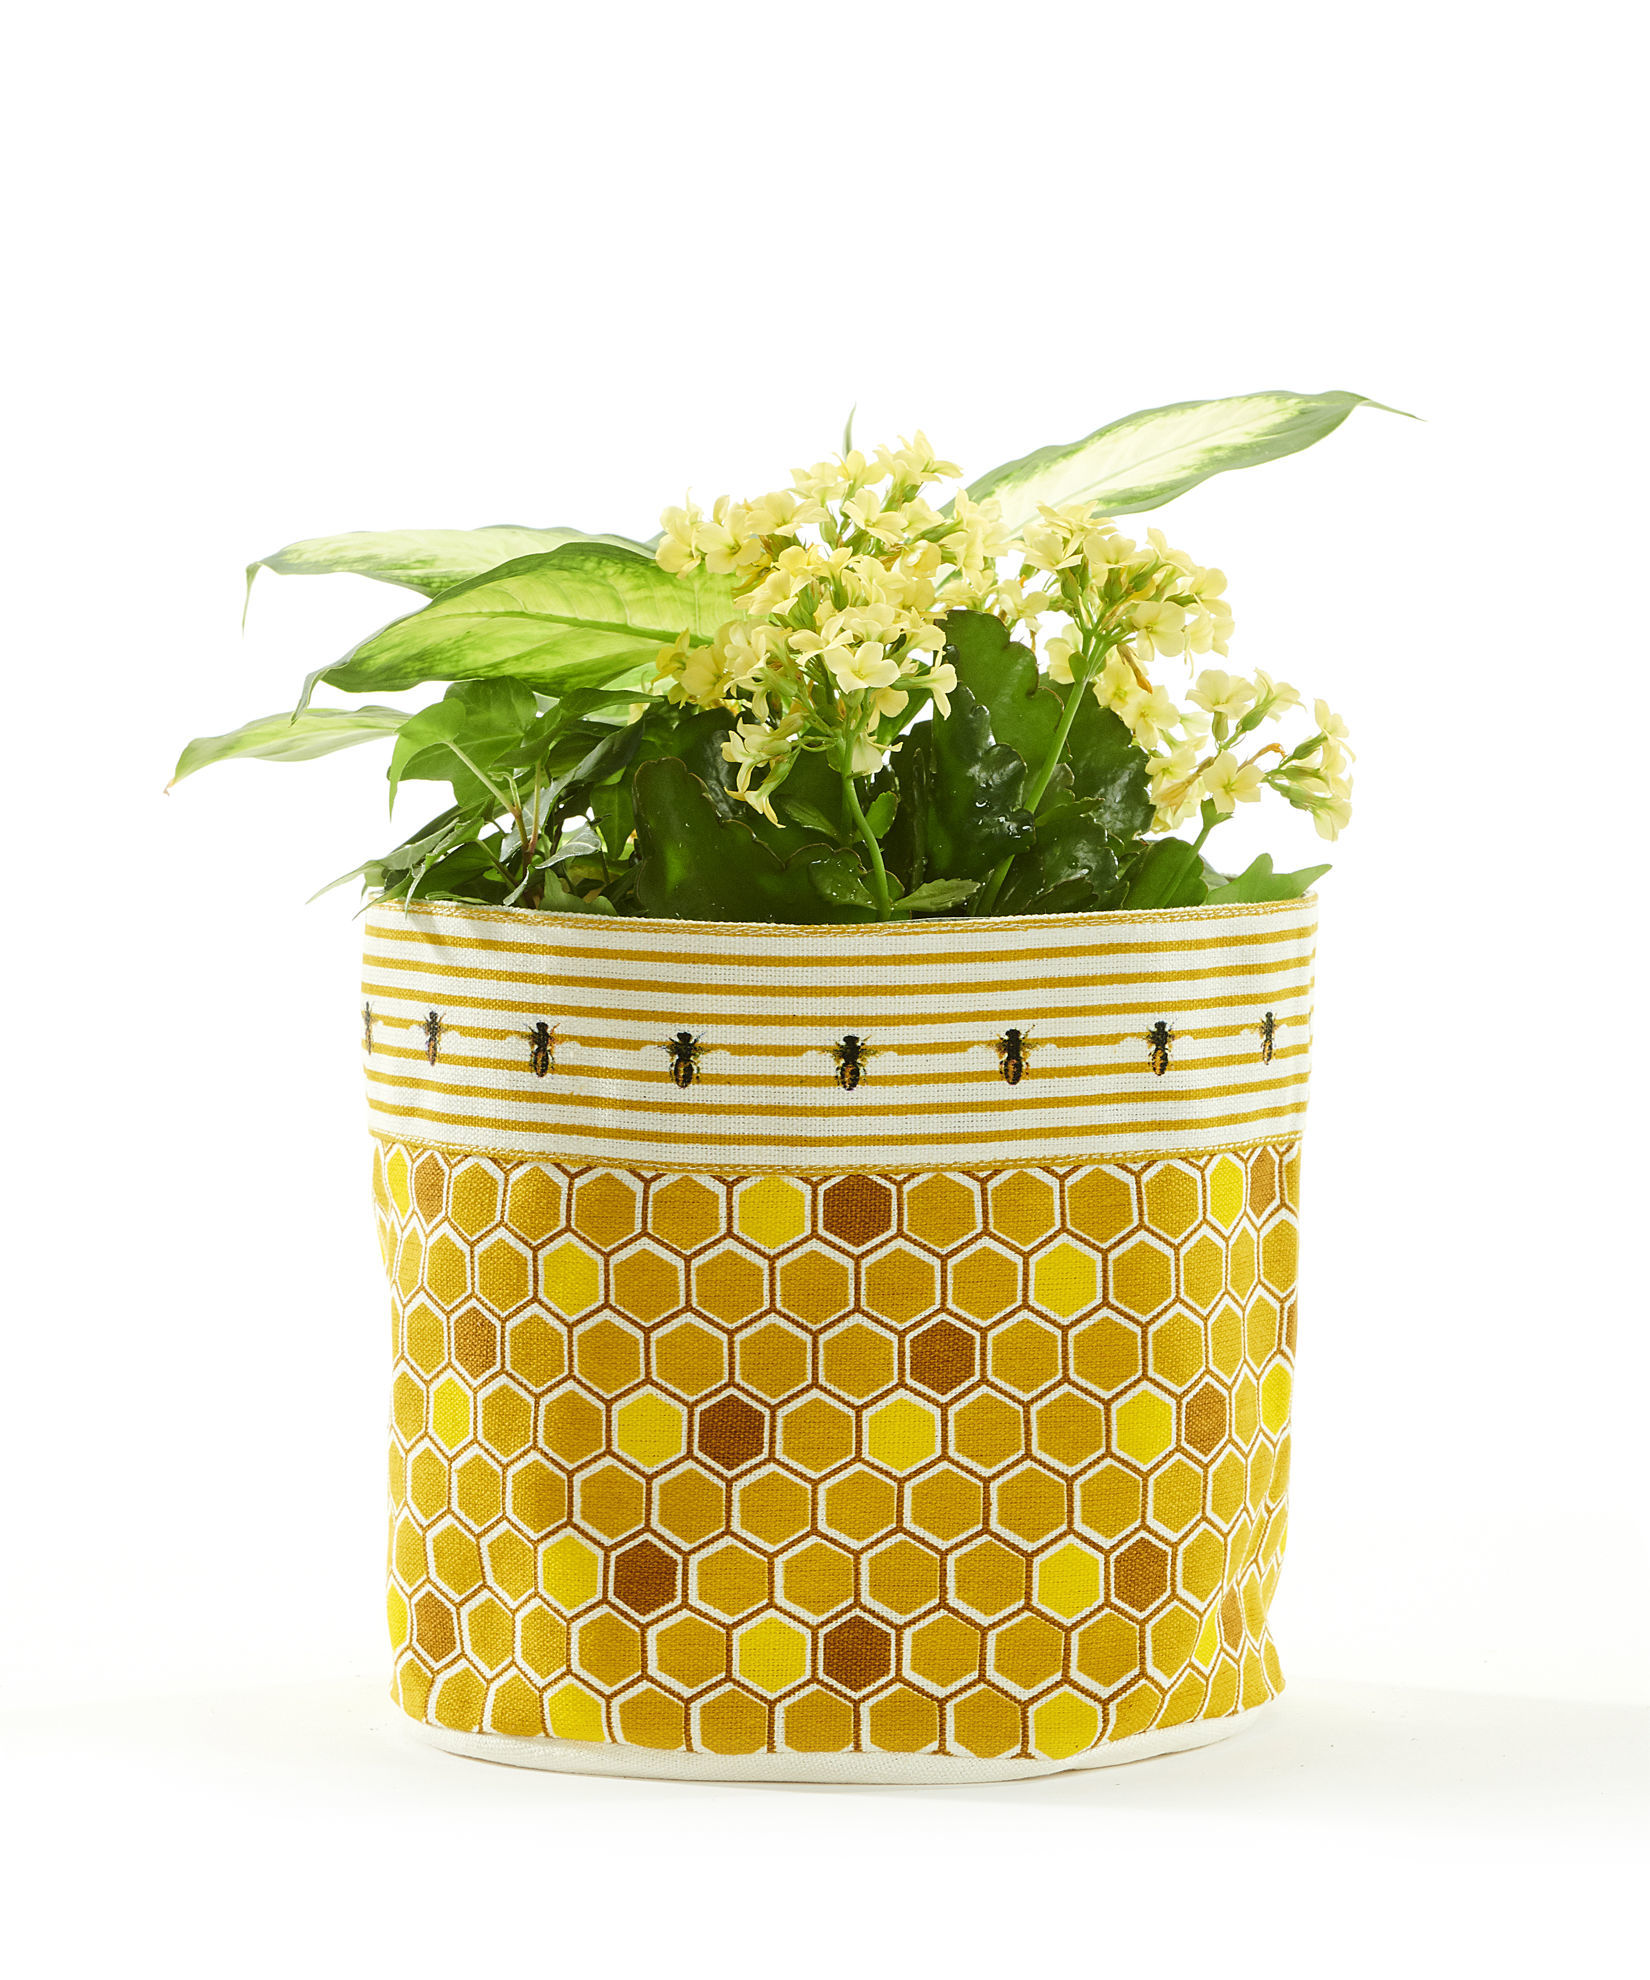 Bee Store n More Storage/Planter by Giftcraft